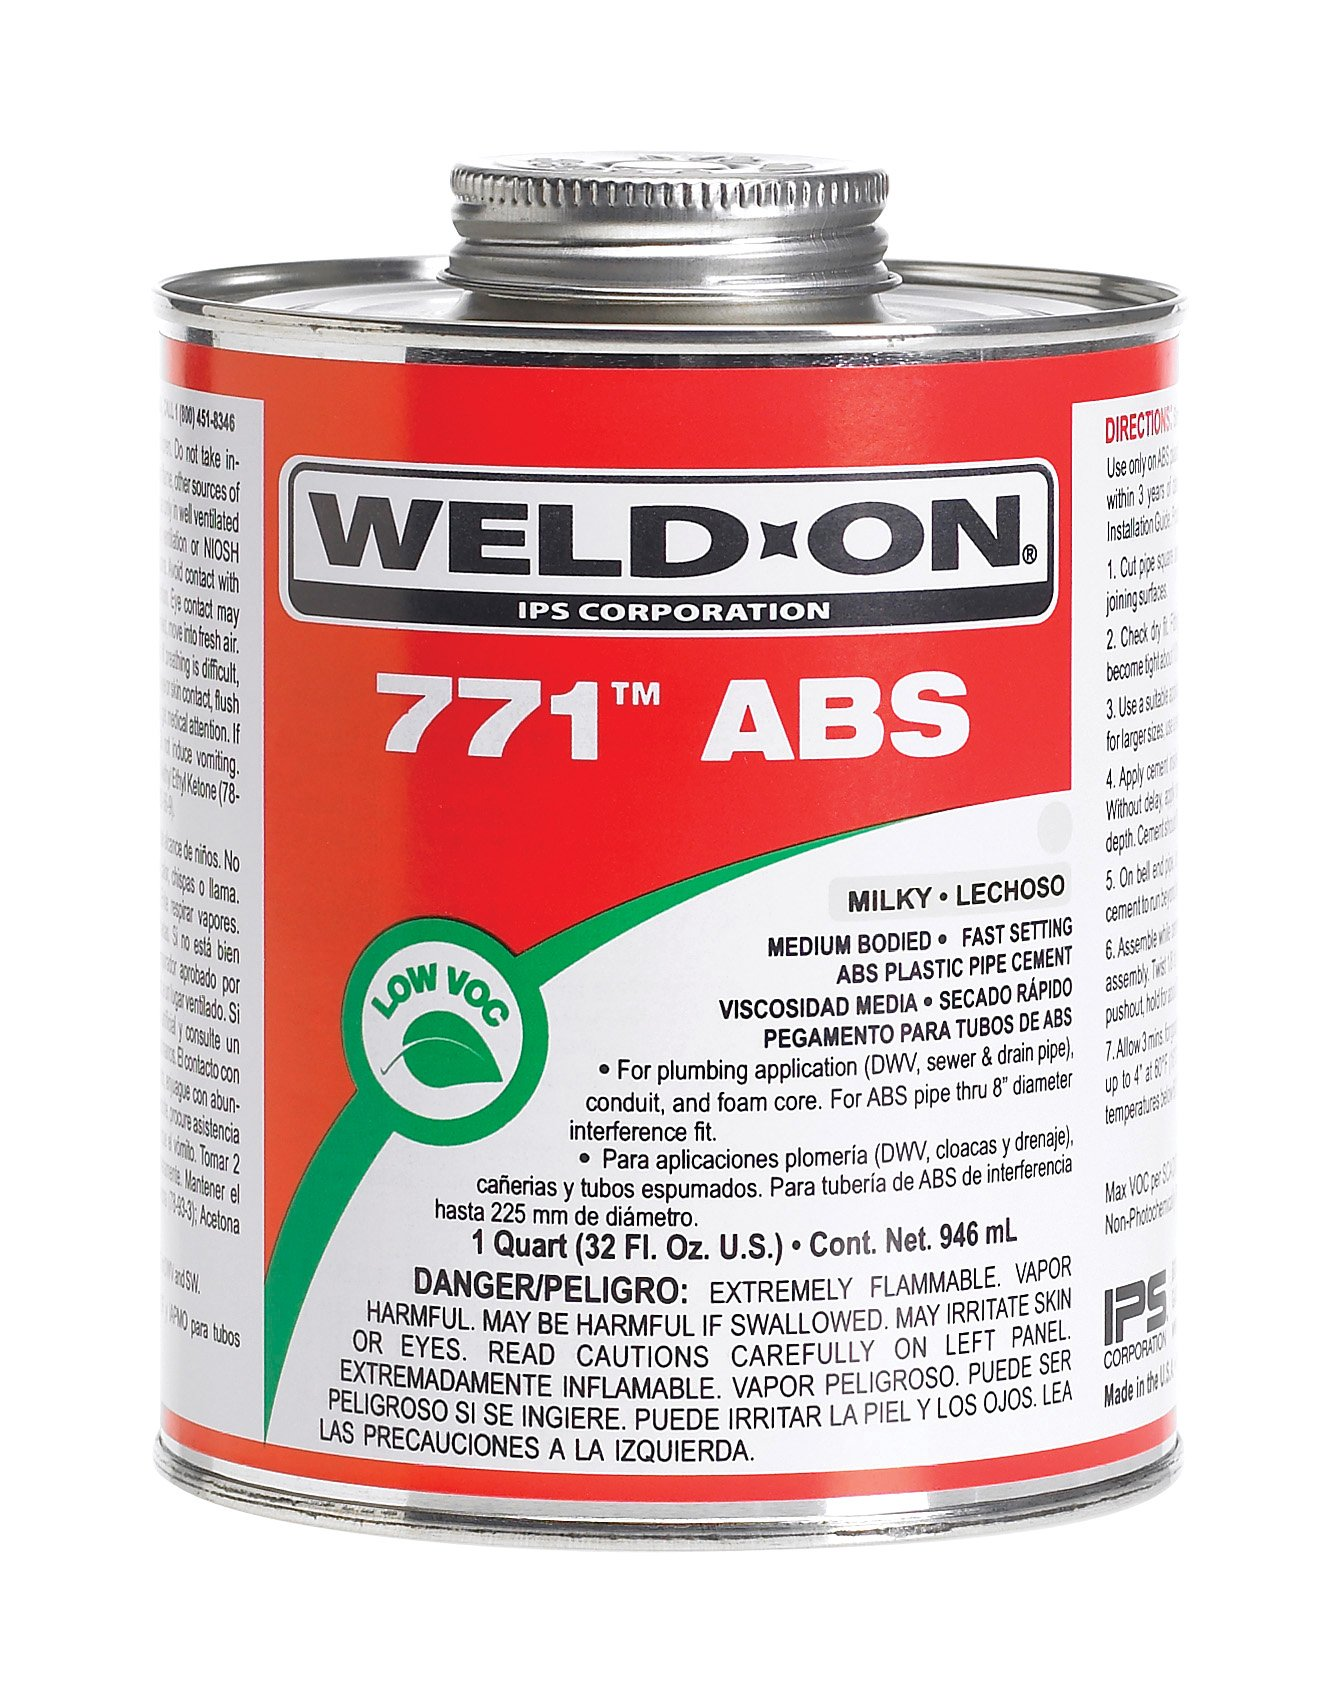 Weld-On 10233 Milky White 771 Medium-Bodied ABS Professional Industrial-Grade Cement, Fast-Setting, Low-VOC, 1 pint Can with Applicator Cap